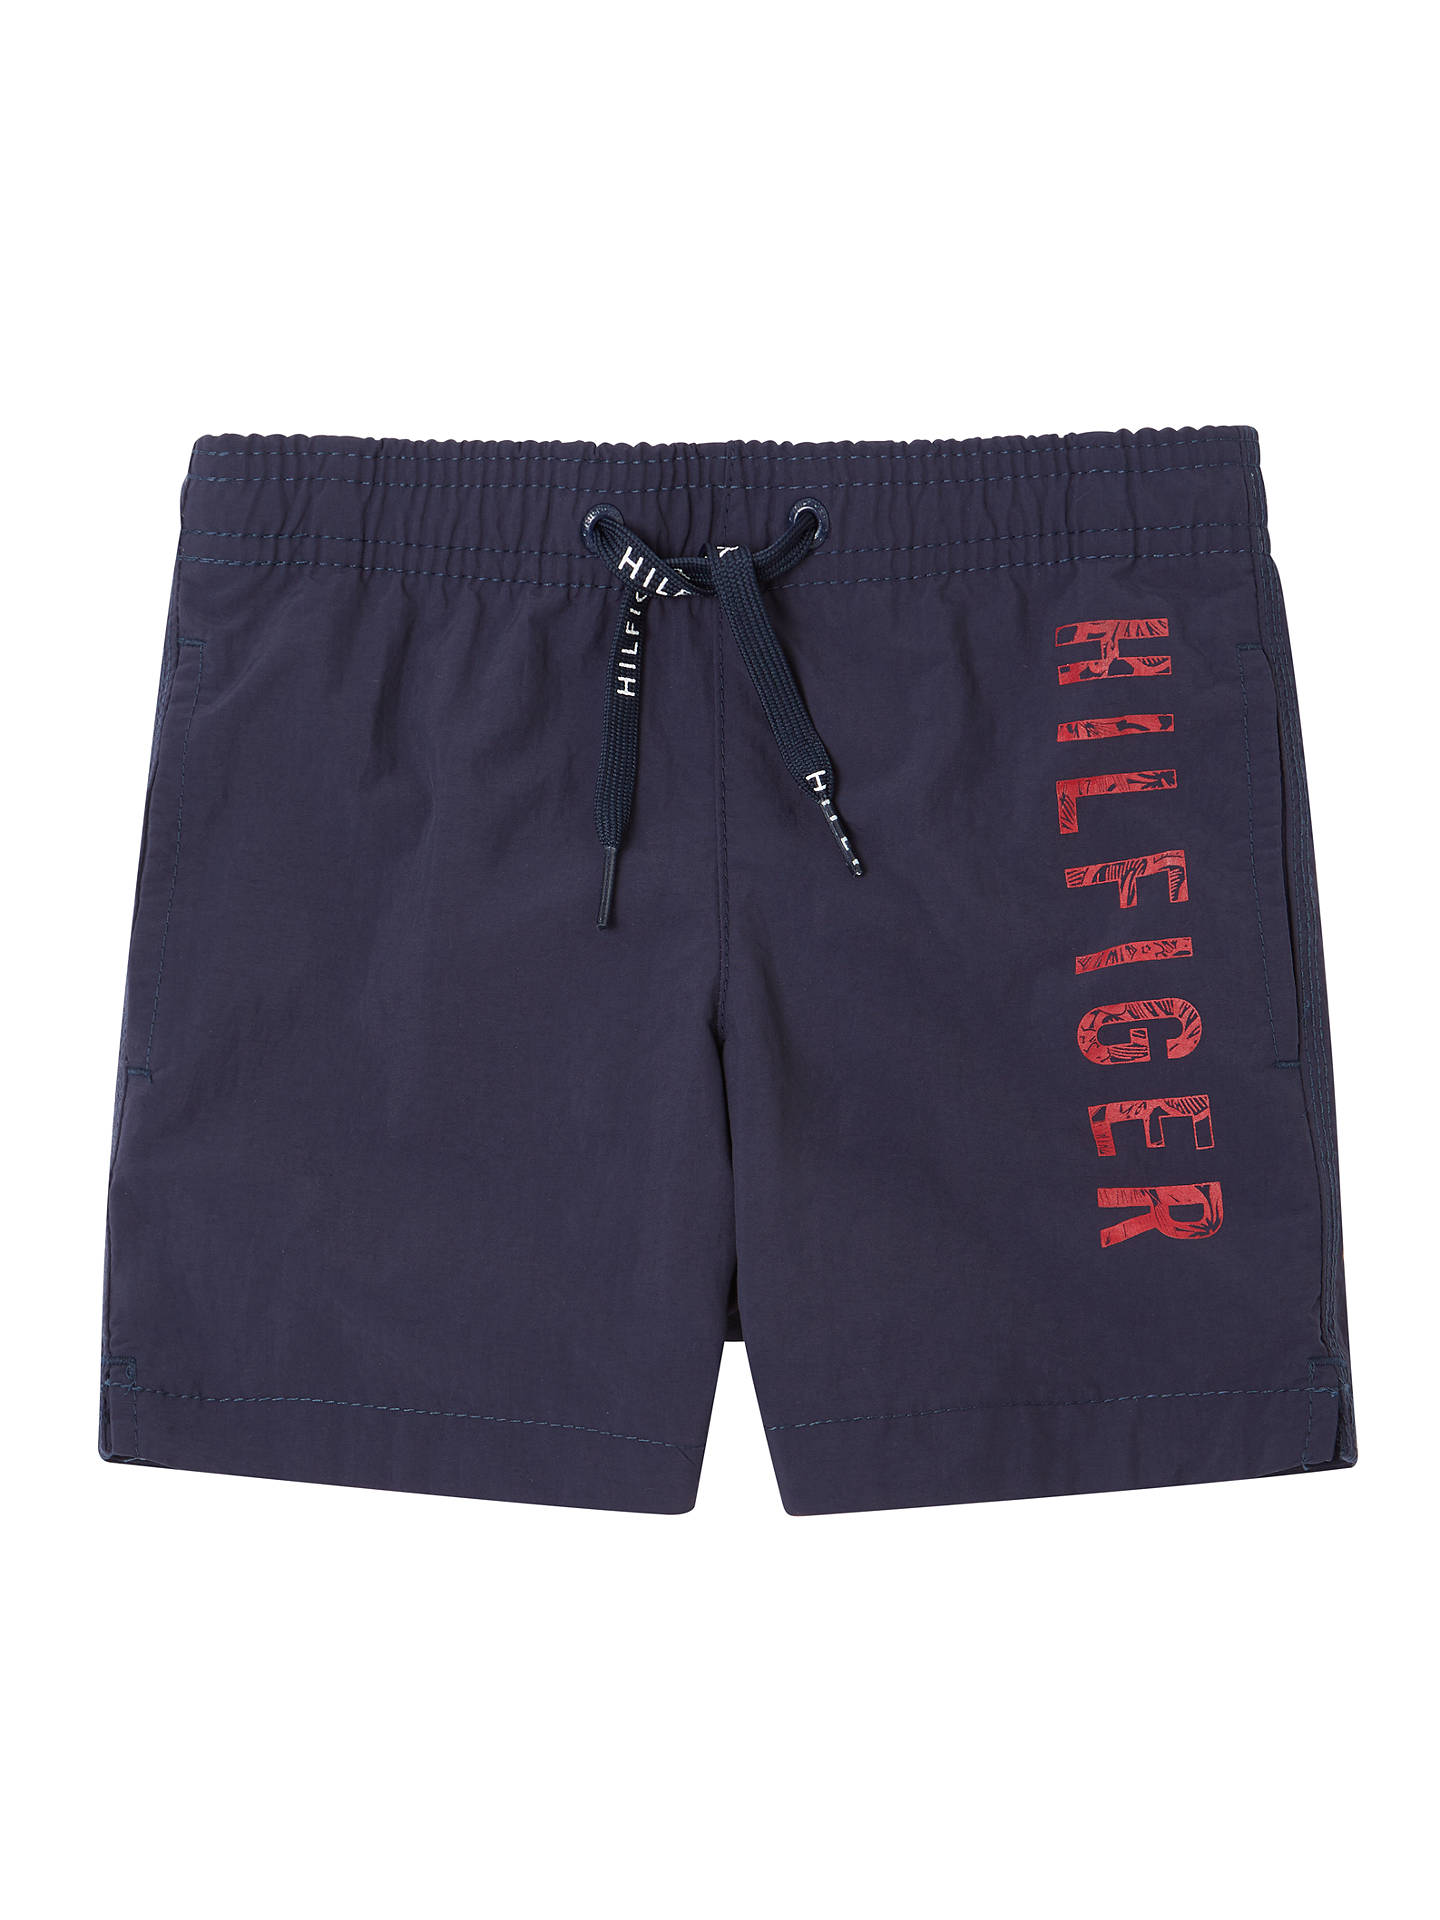 441789f34 Buy Tommy Hilfiger Boys  Swim Shorts